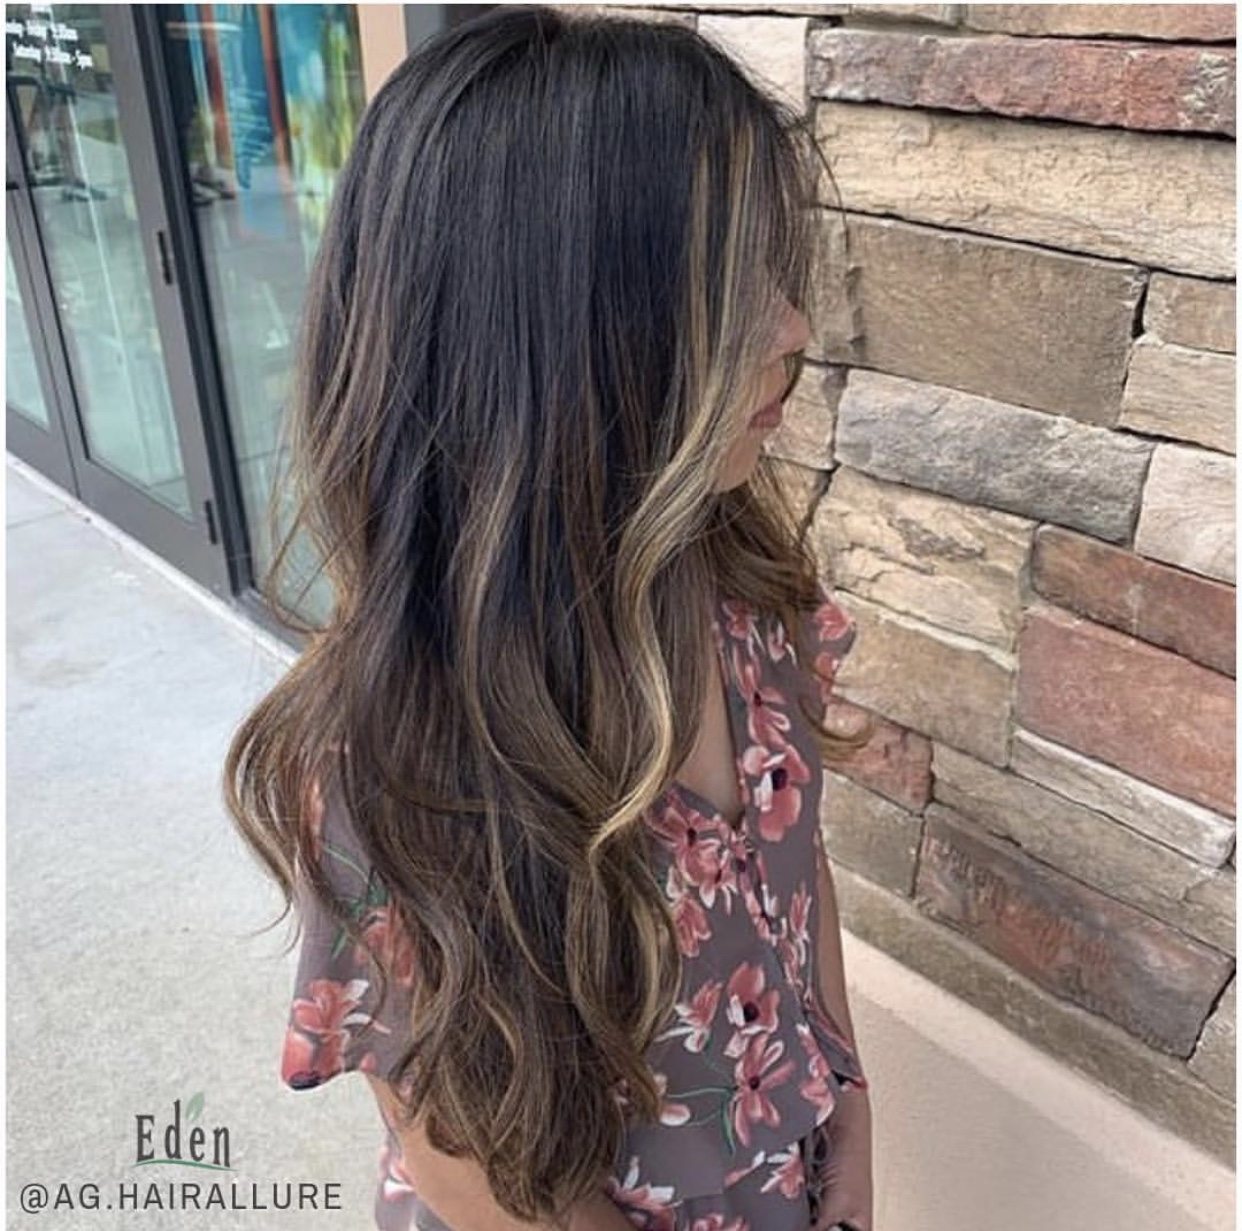 eden_vero_beach_hair_salon_06.jpg